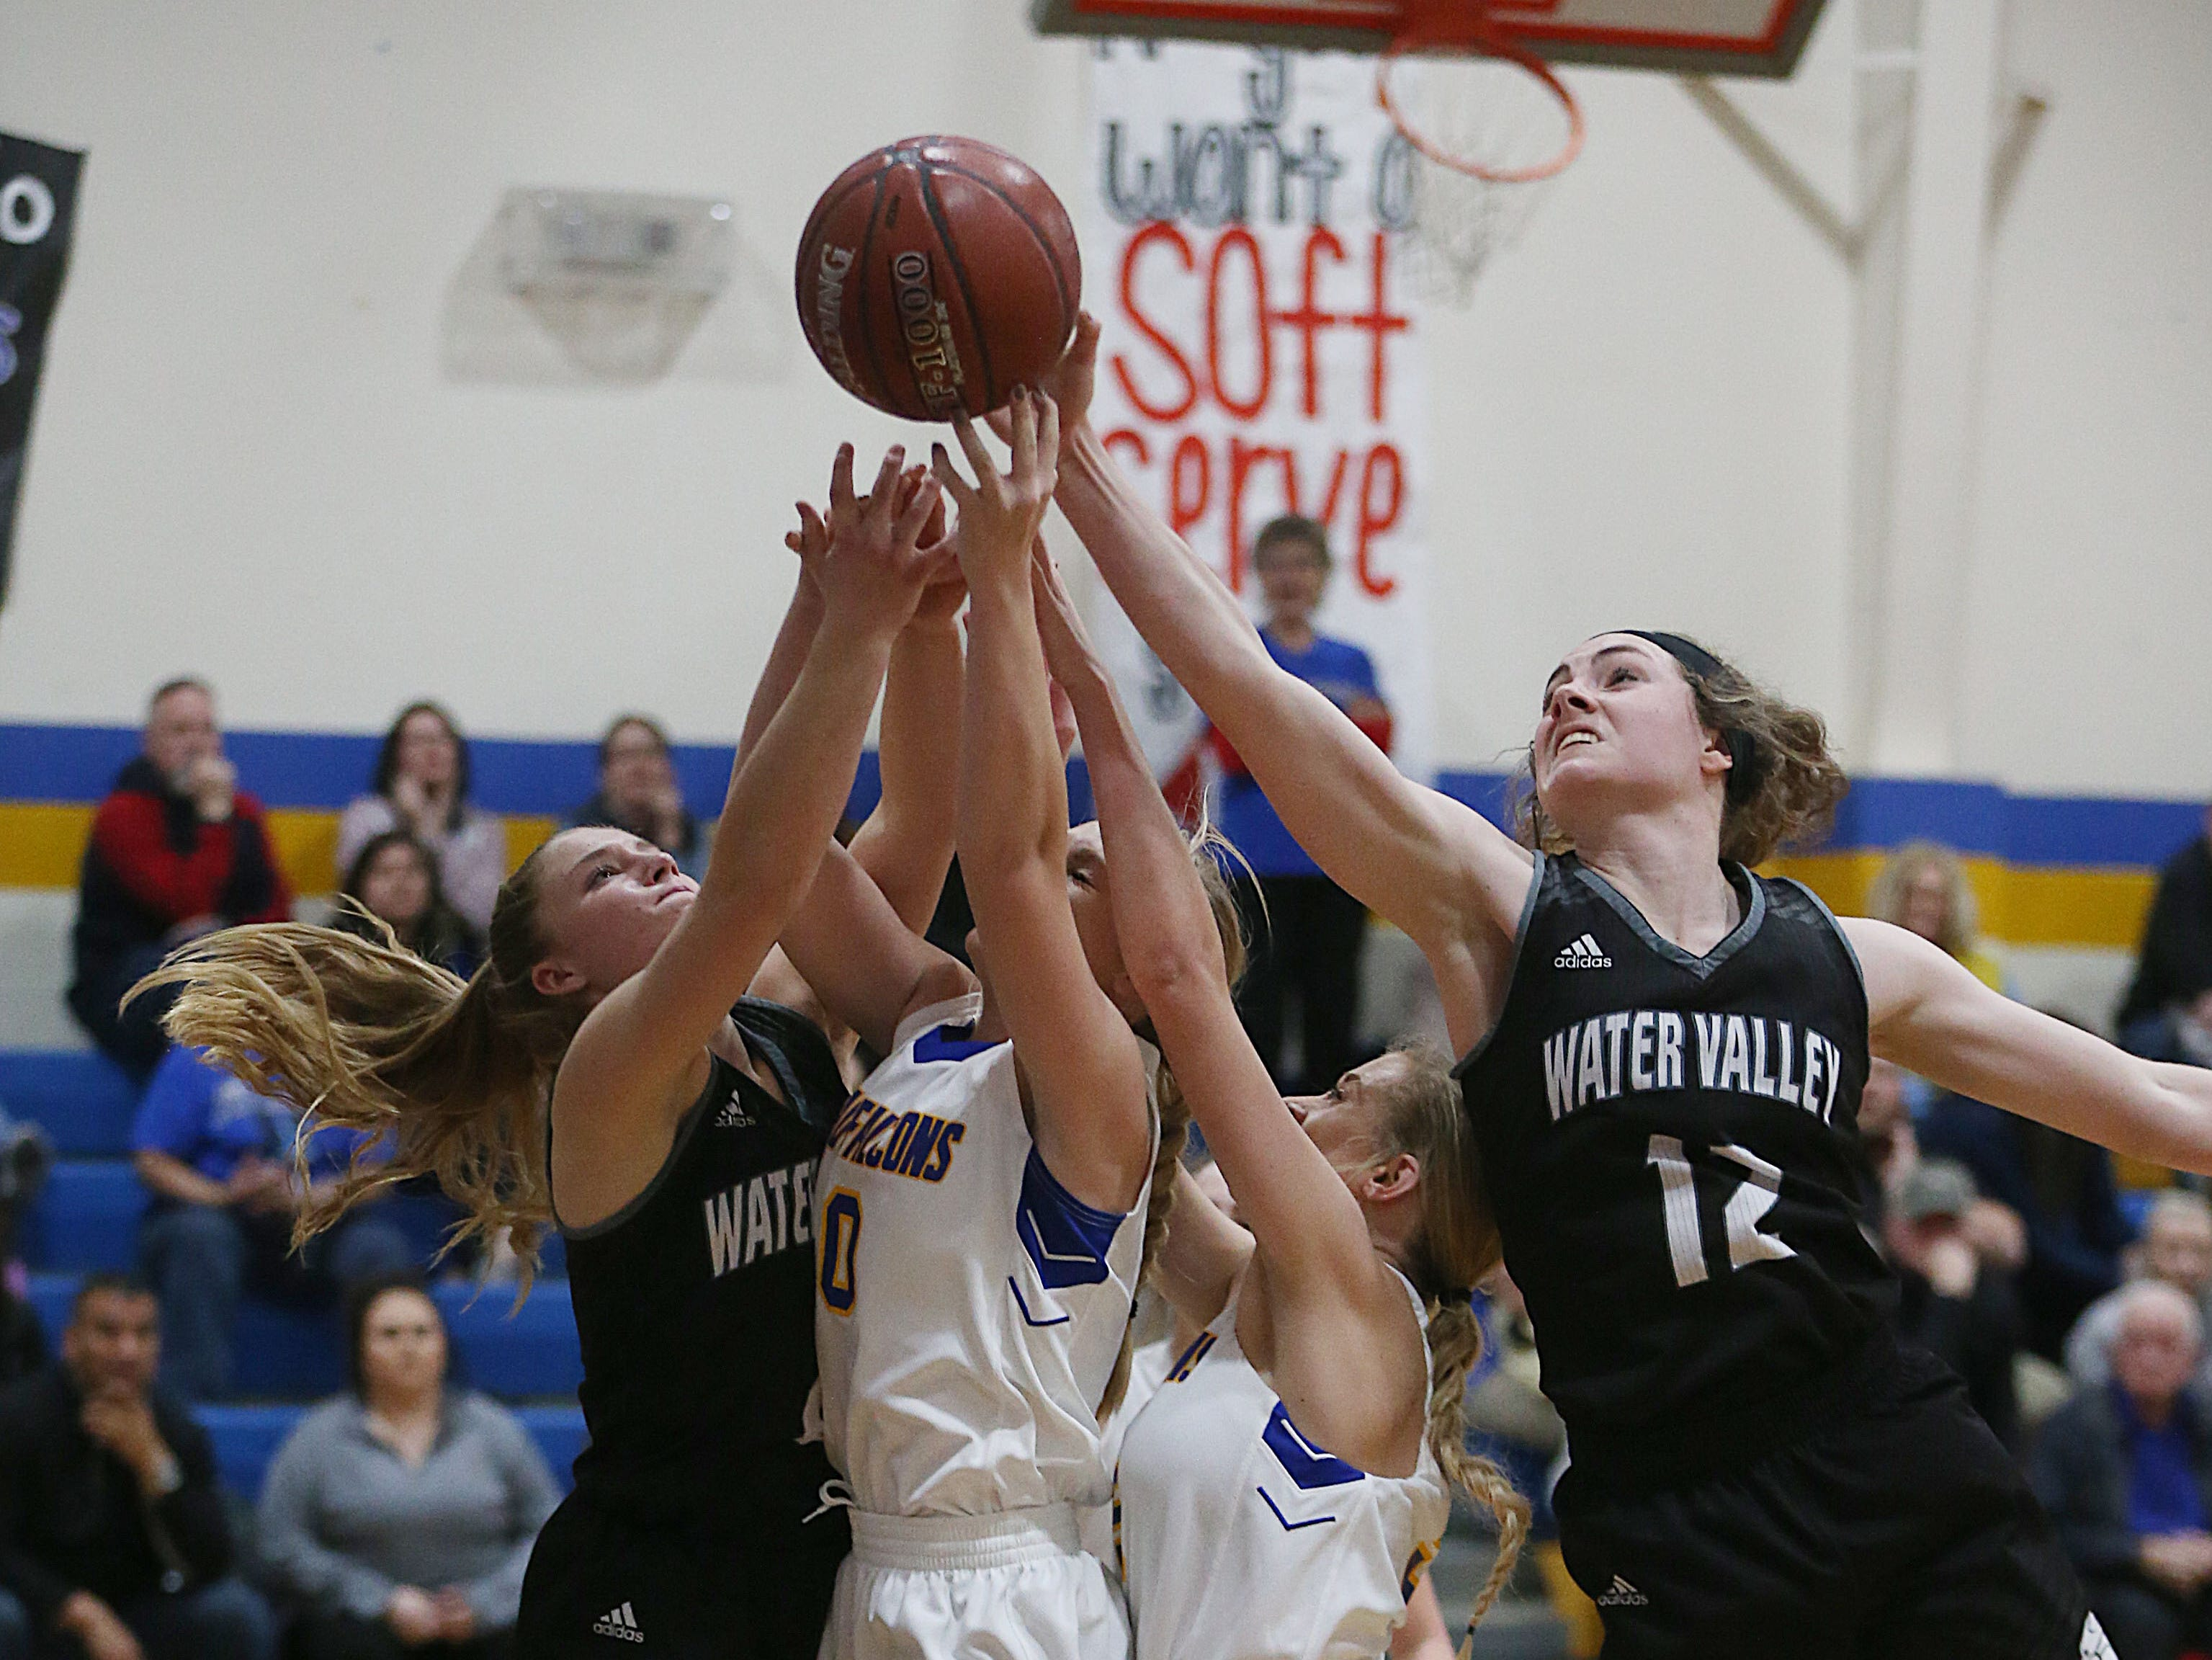 Water Valley's Kalysta Minton-Holland (#12) knocks the ball from the hands of Veribest players Tuesday, Jan. 8, 2019 during the game in Veribest.